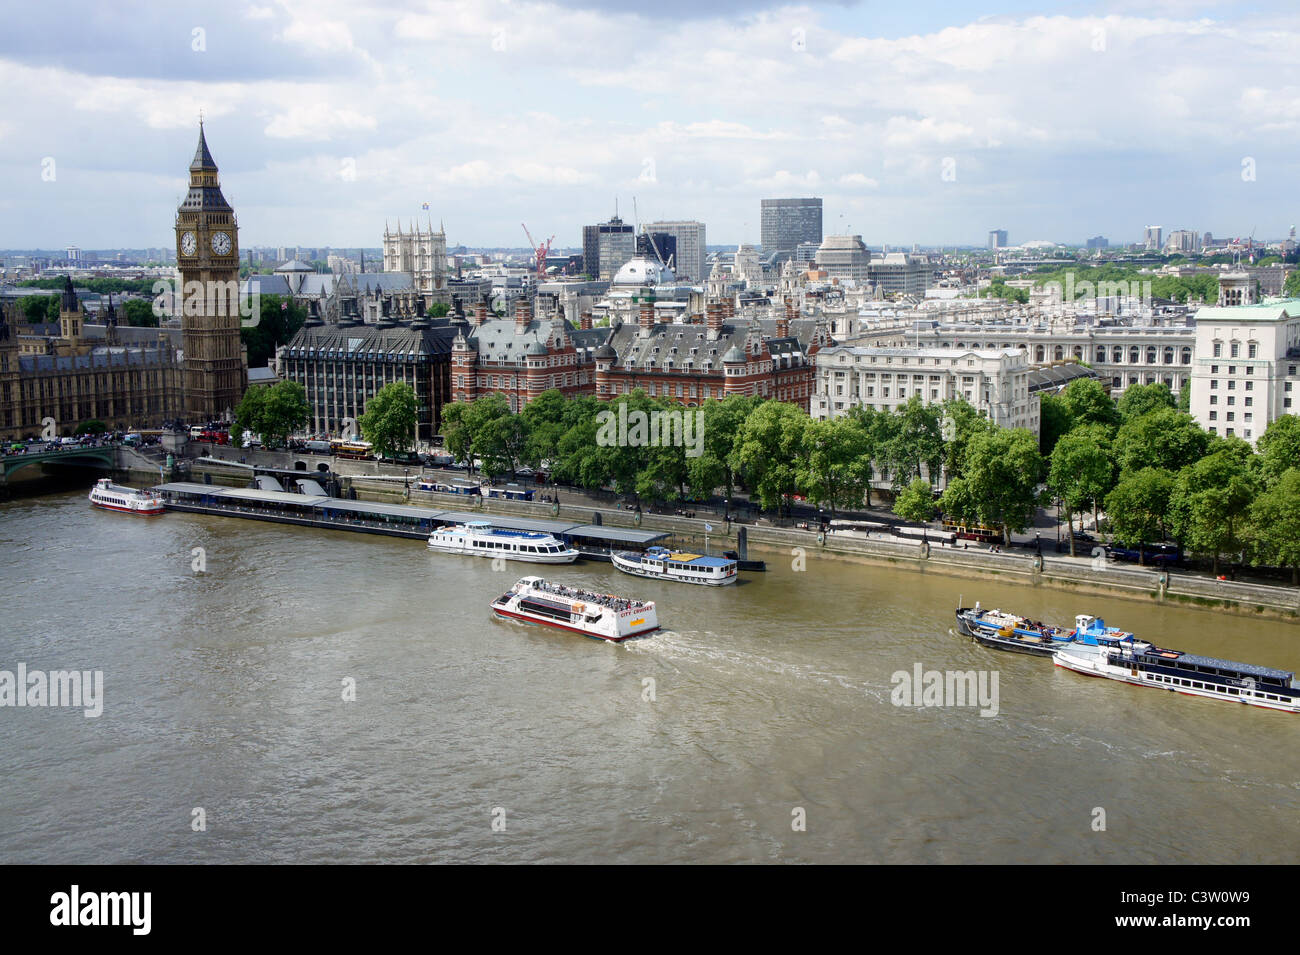 London Embankment, Big Ben, Parliamentary Offices River Thames as seen from the London Eye. - Stock Image